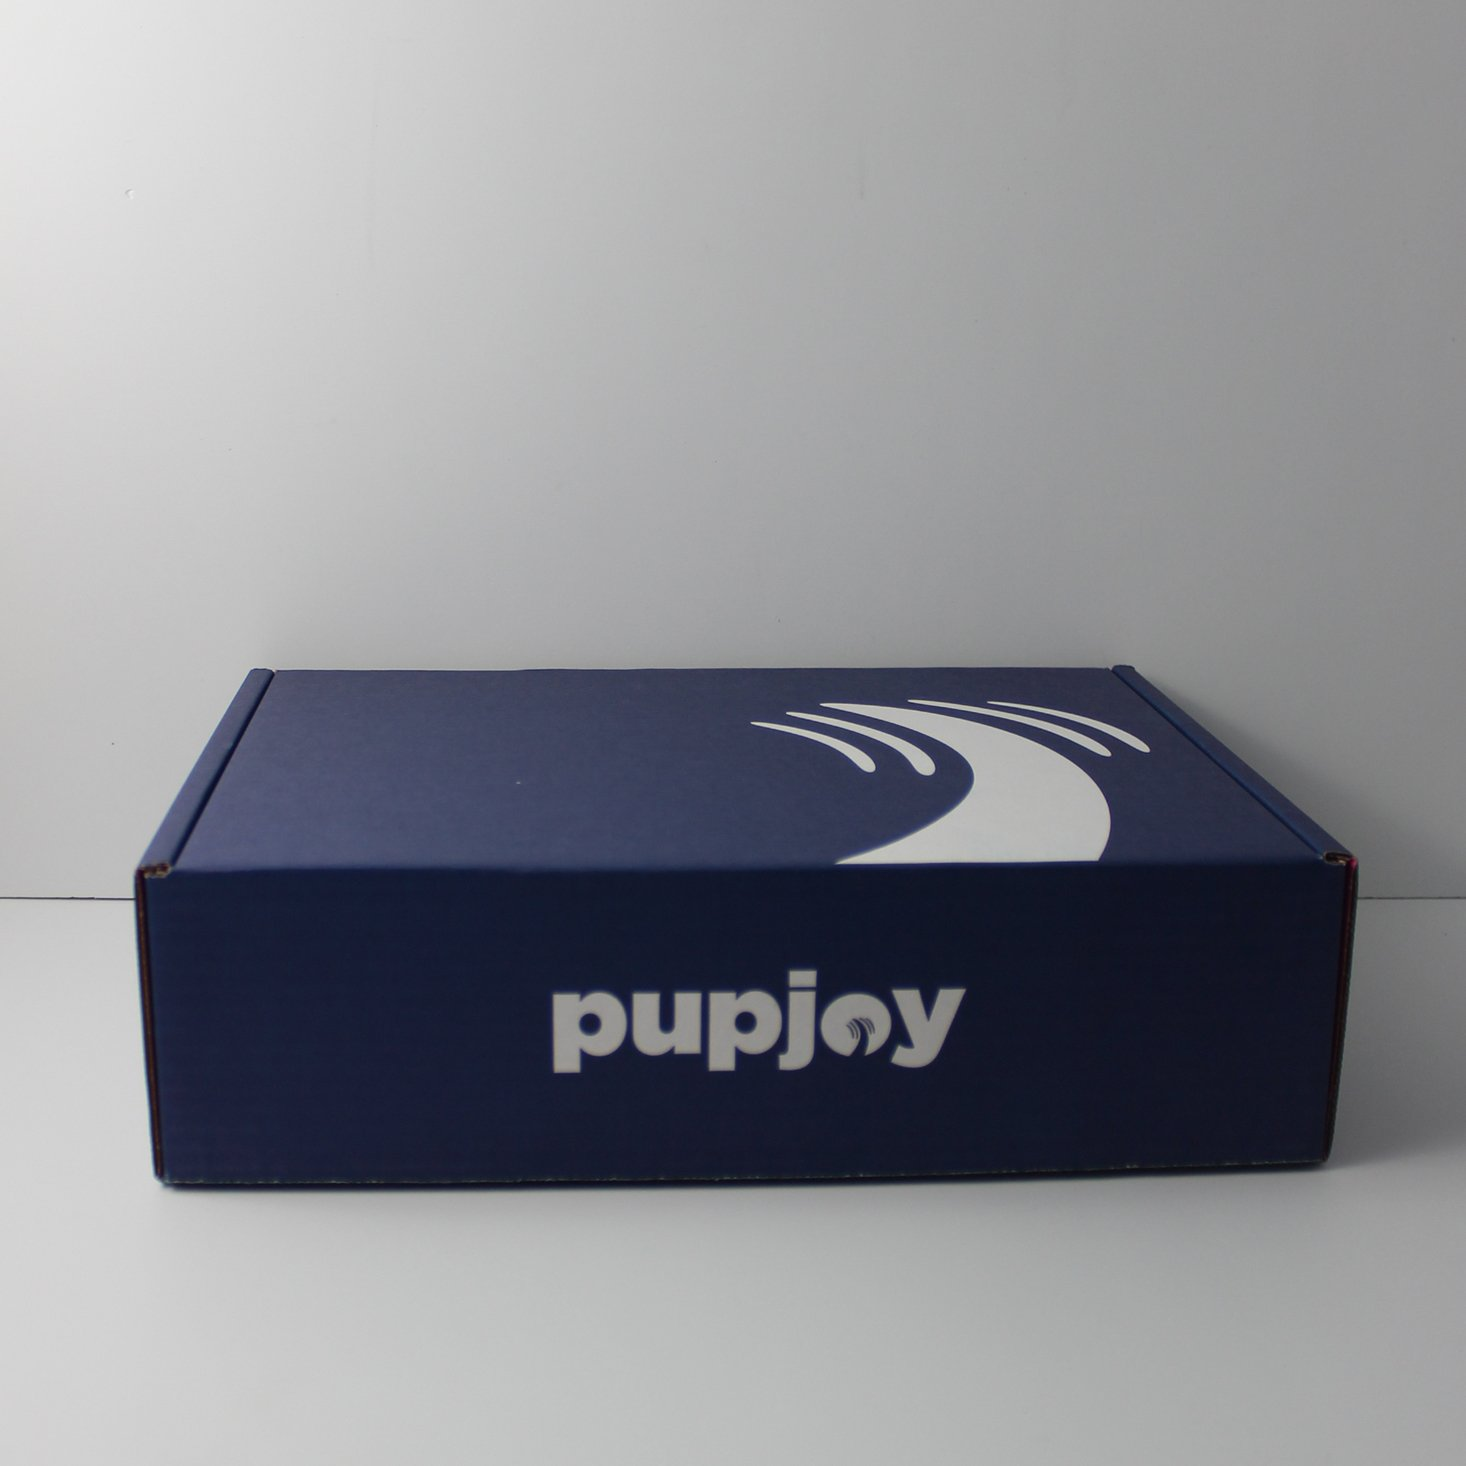 Pupjoy Power Chewer Dog Box Review + Coupon – March 2018